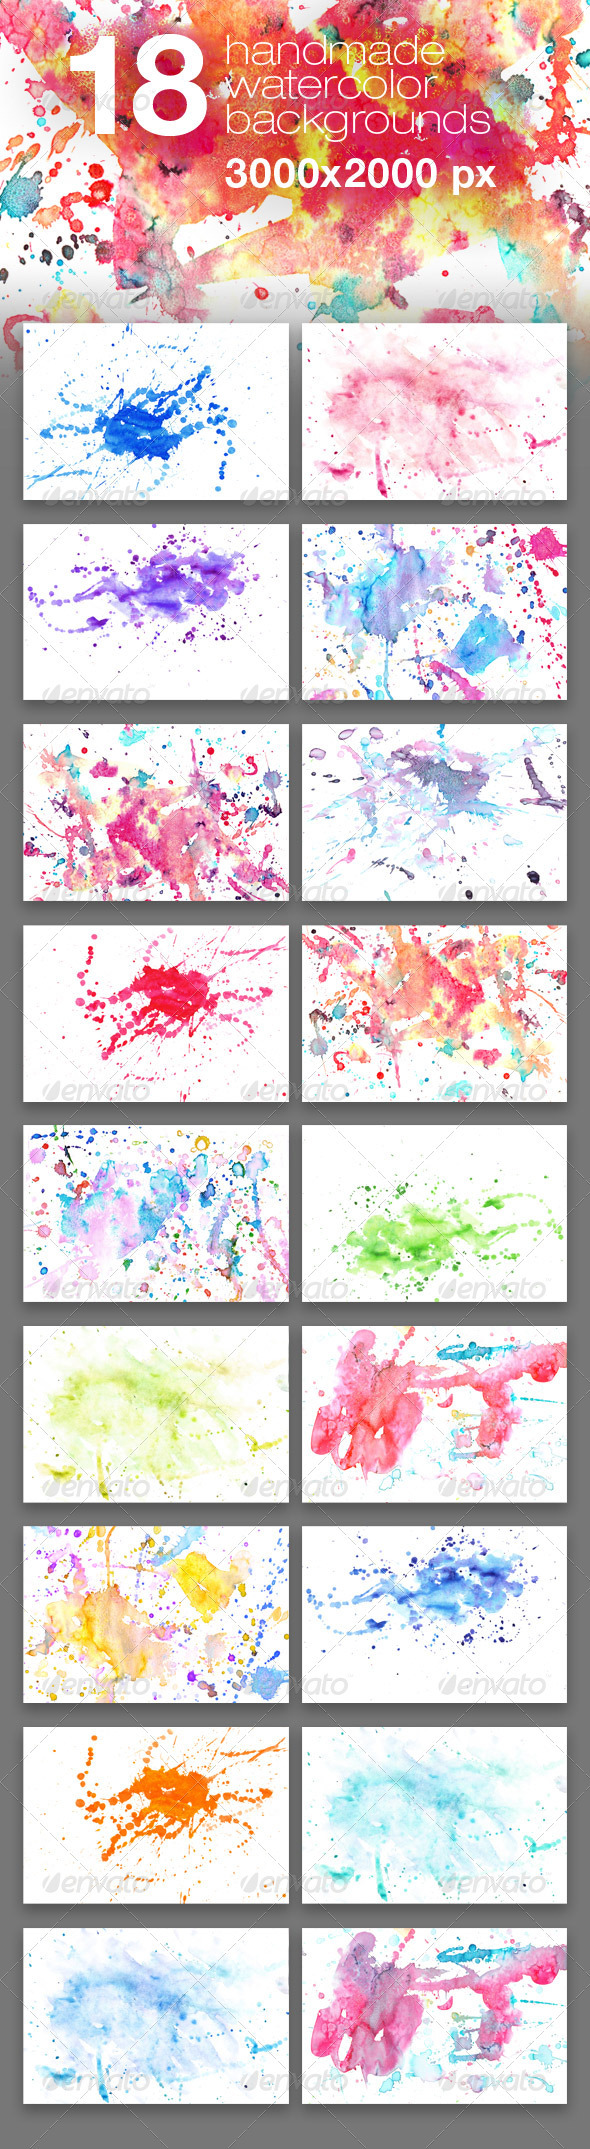 18 Handmade Watercolor Texture Backgrounds - Miscellaneous Textures